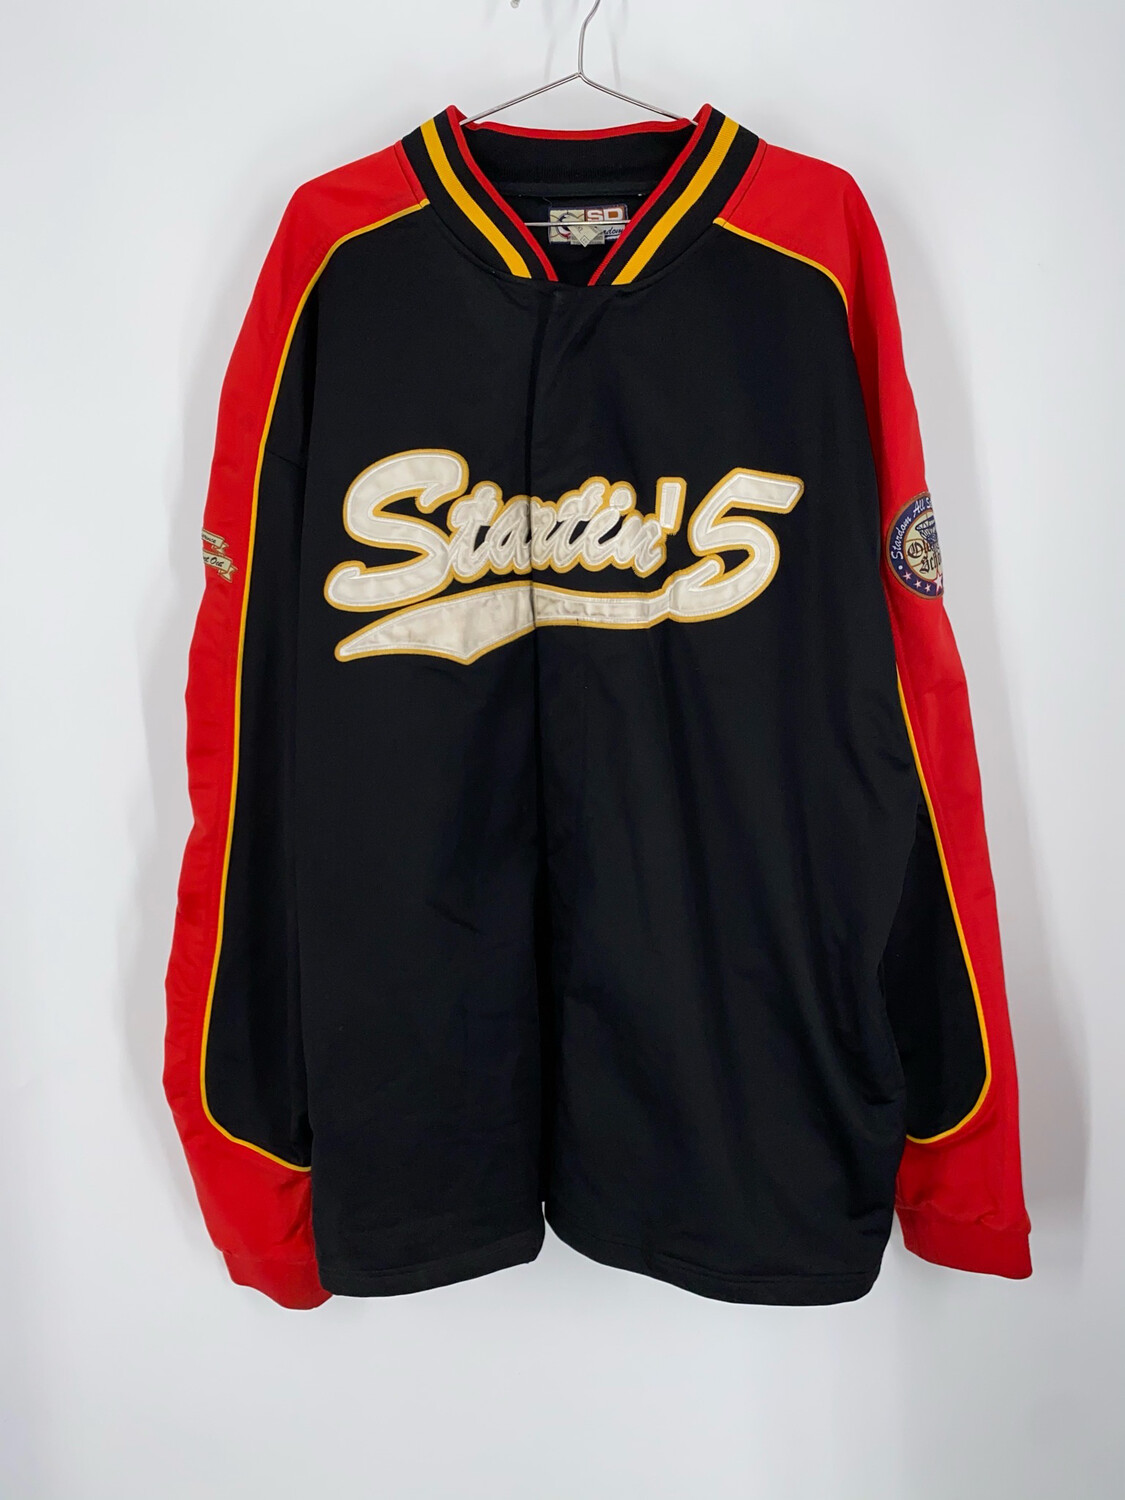 Stardom All Star Series Sports Jacket Size XXXL